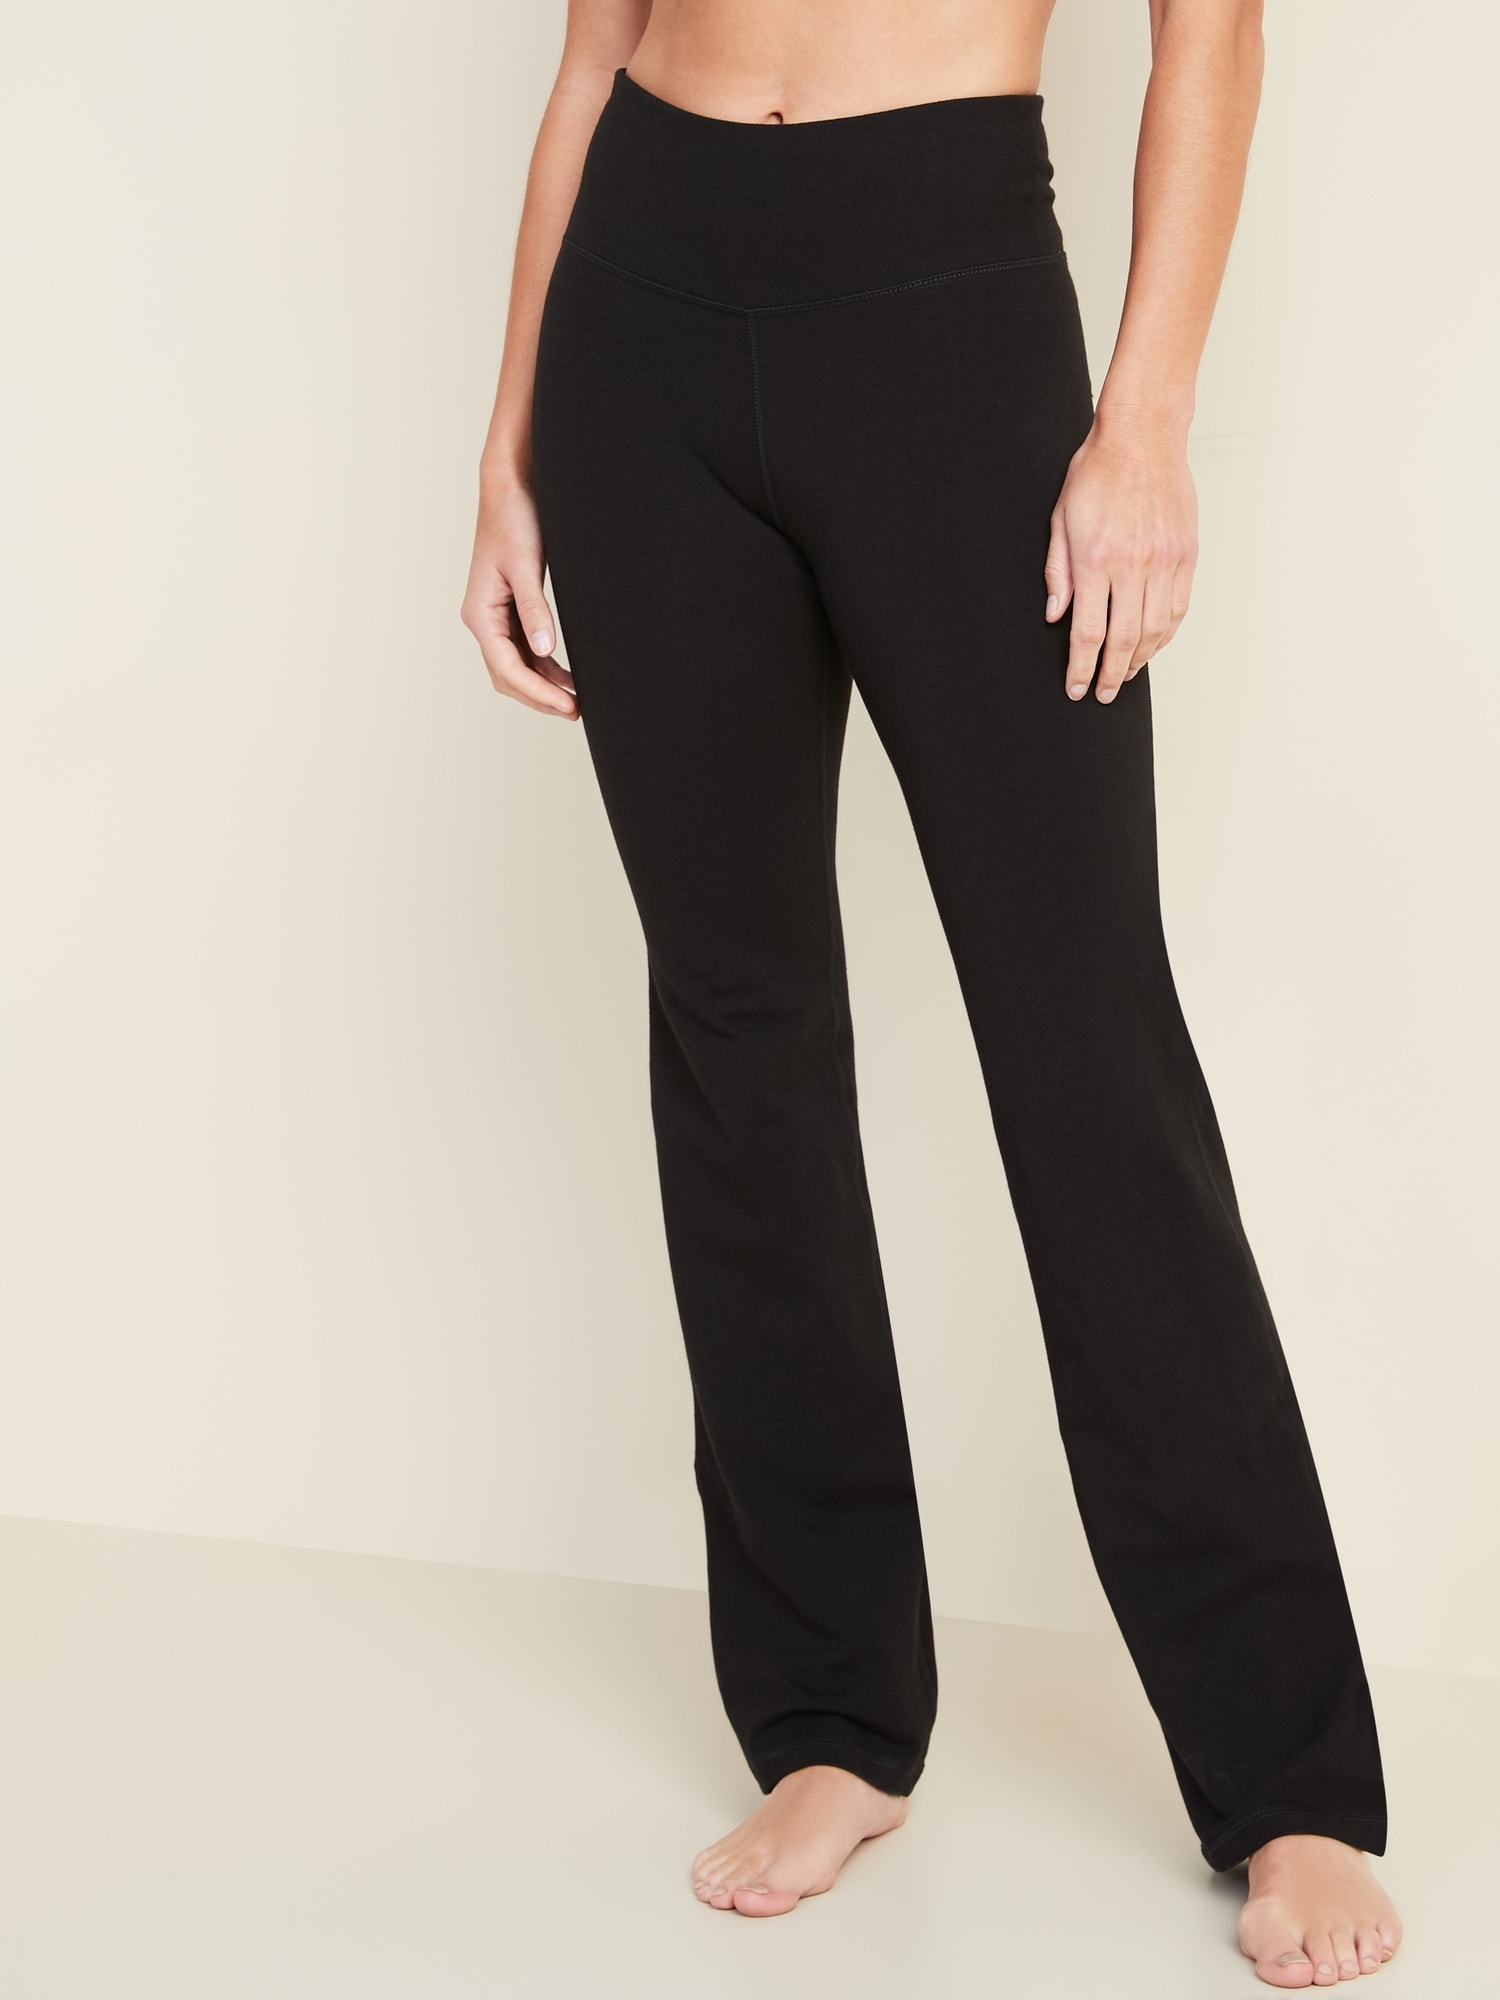 High Waisted Slim Boot Cut Yoga Pants For Women Old Navy